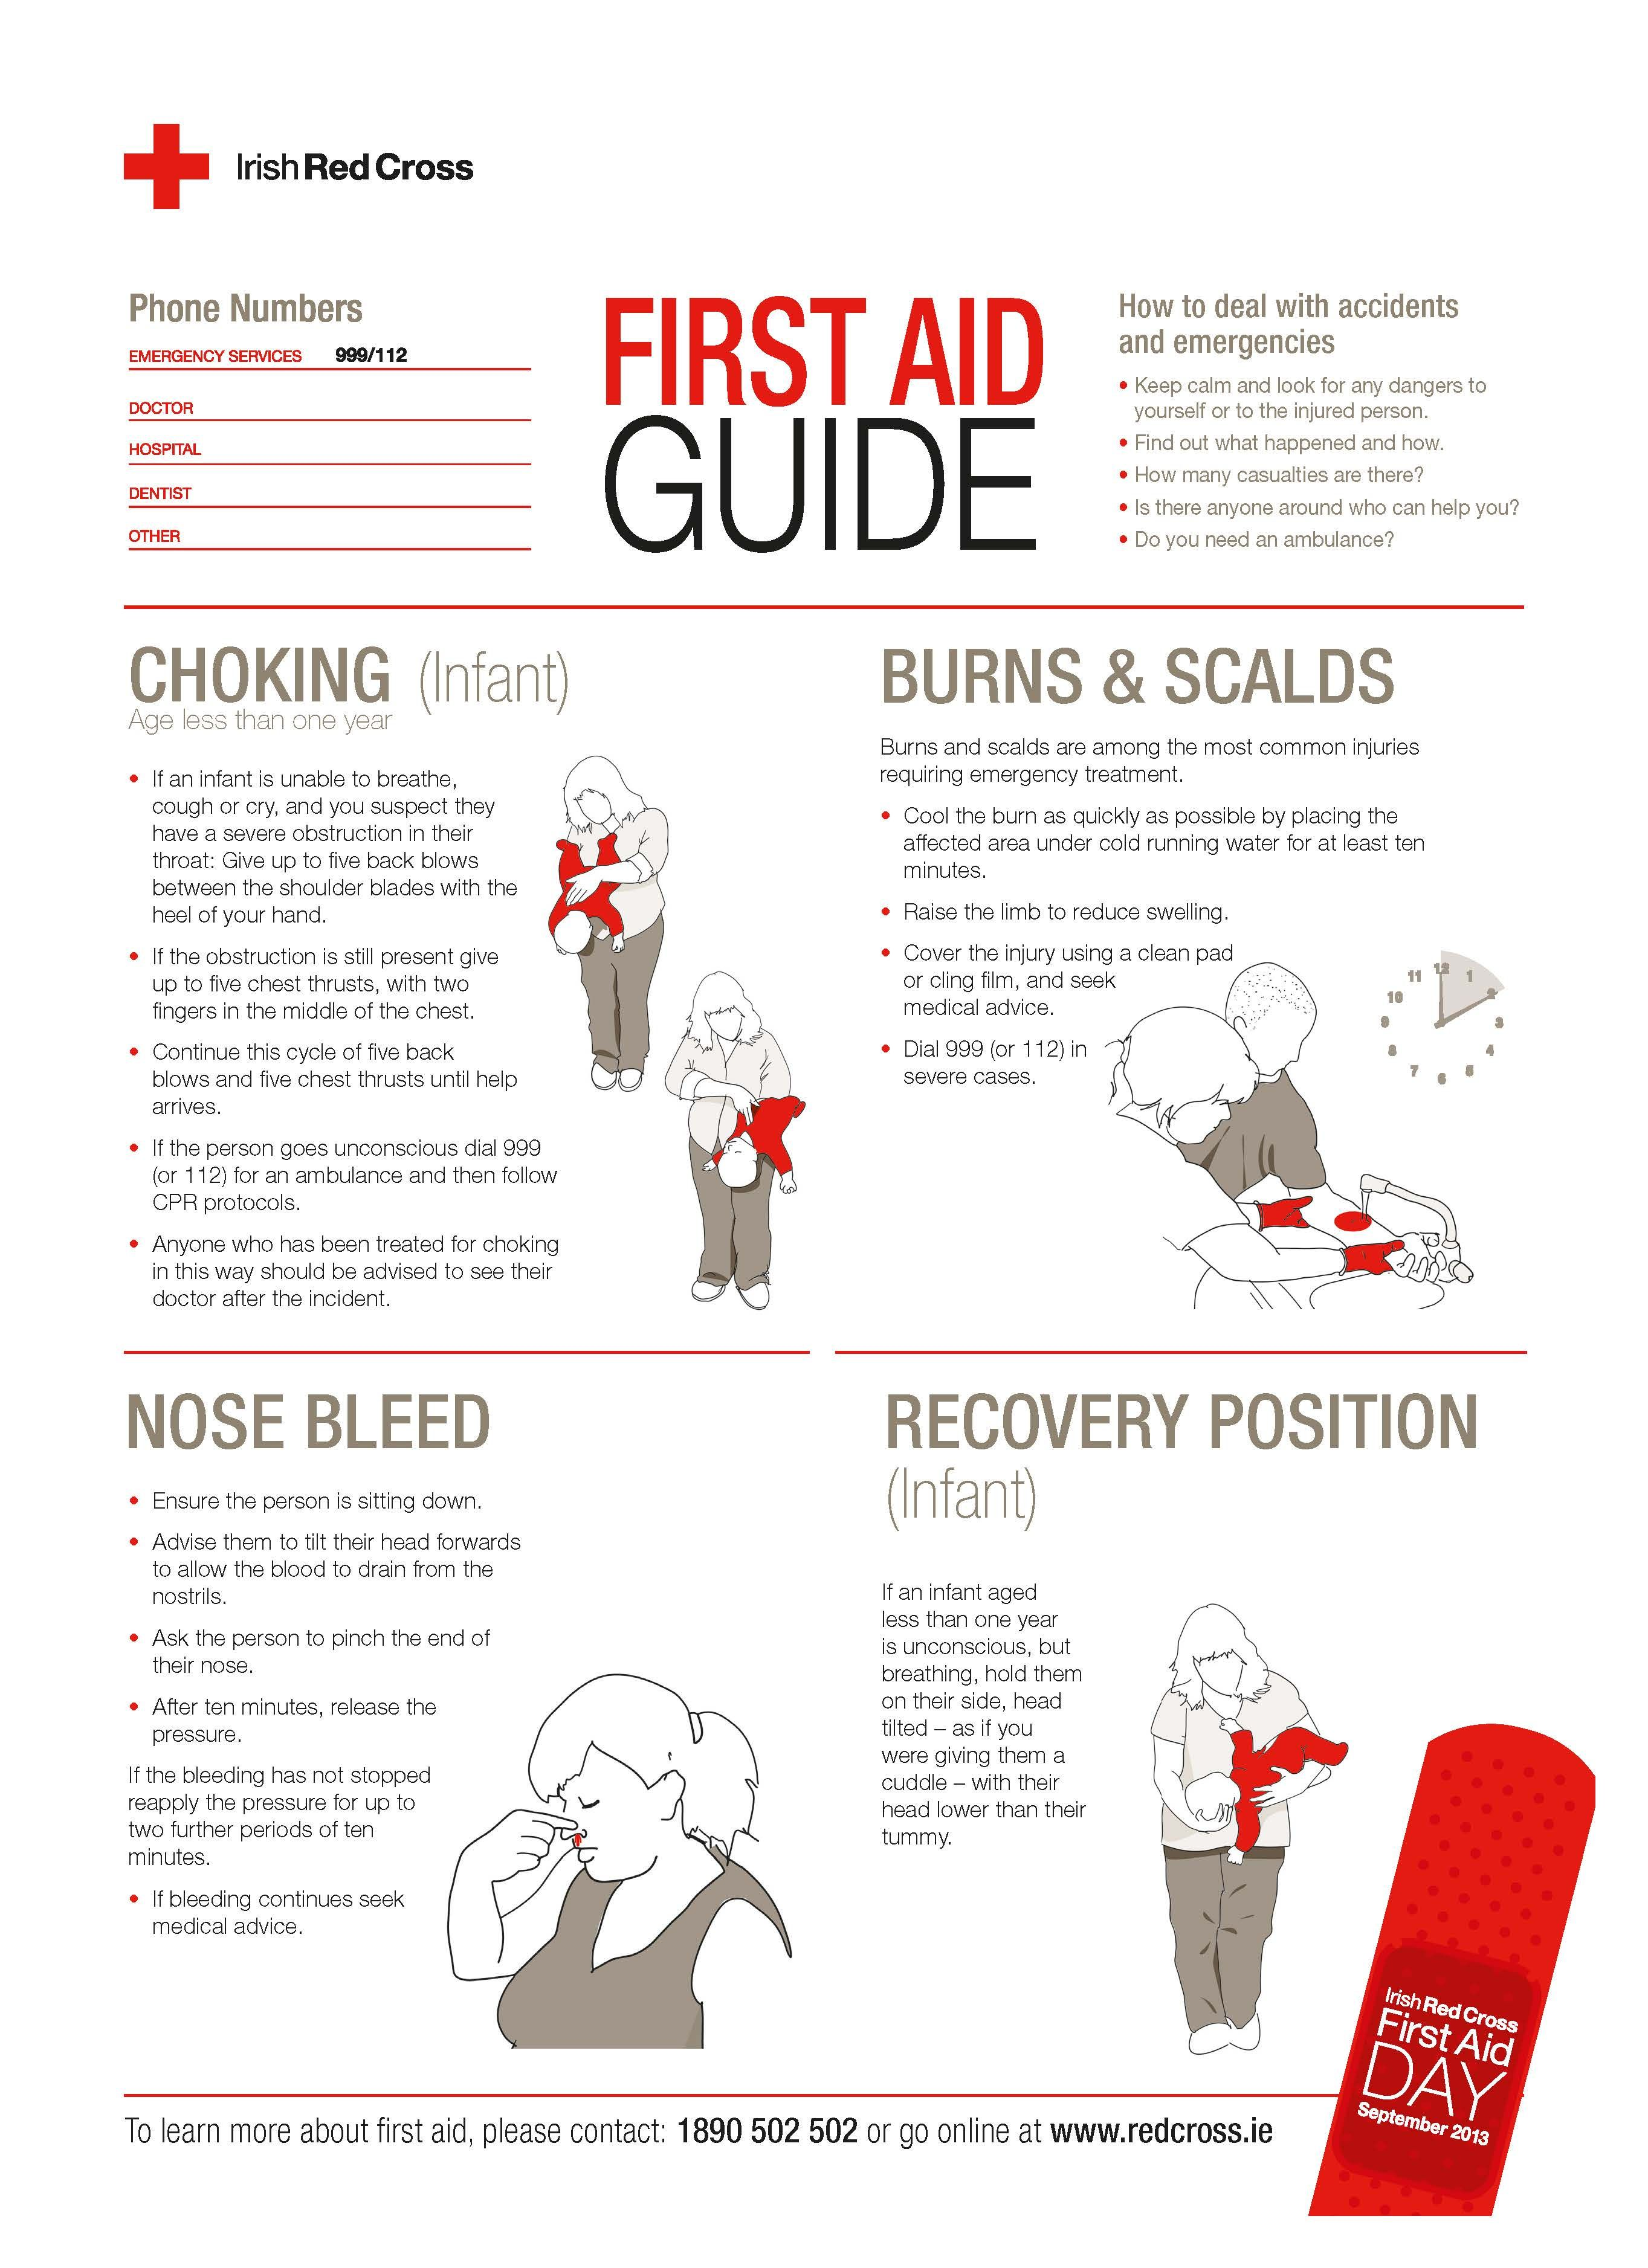 Free A4 First Aid Guide Poster From The Irish Red Cross